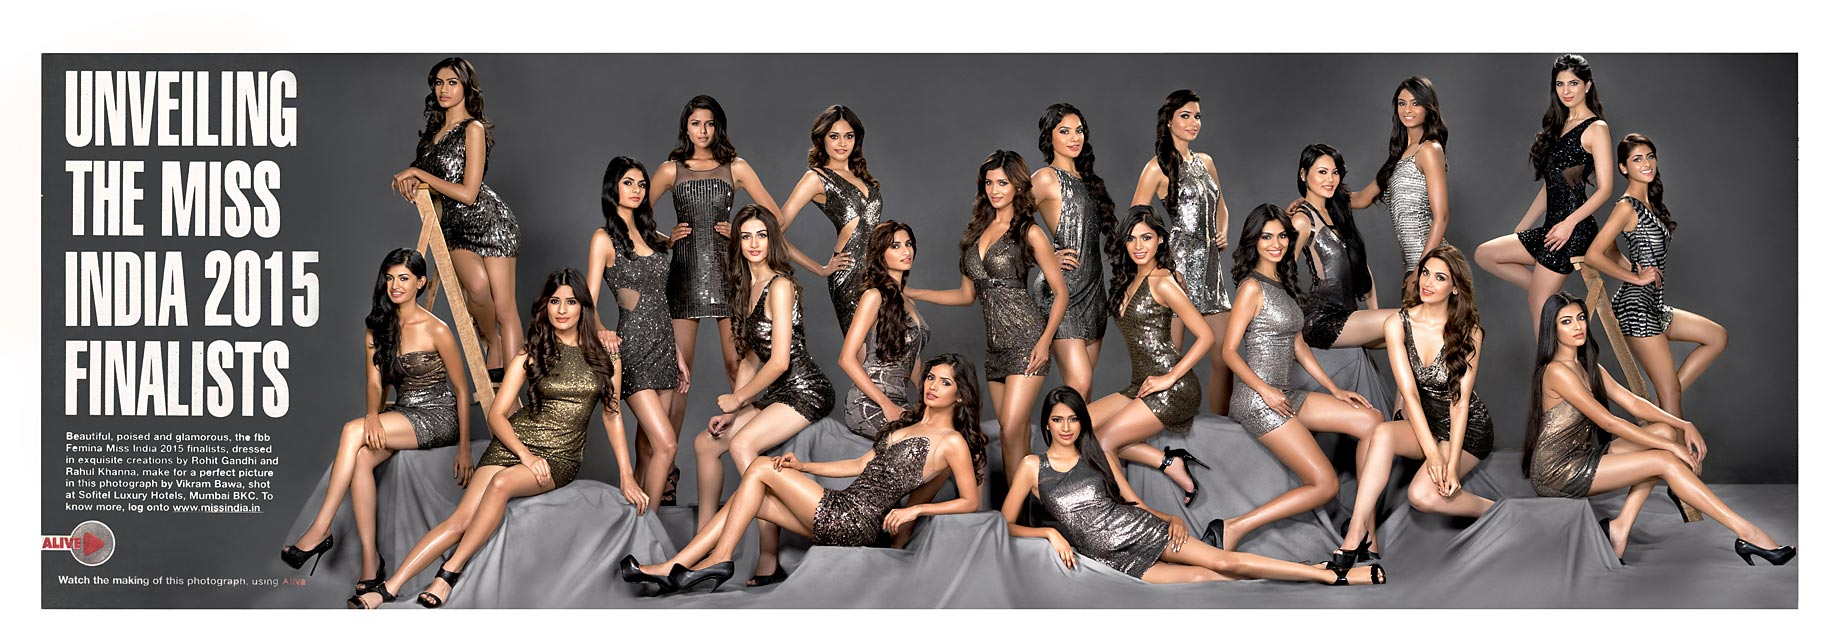 Femina Miss India Contestants